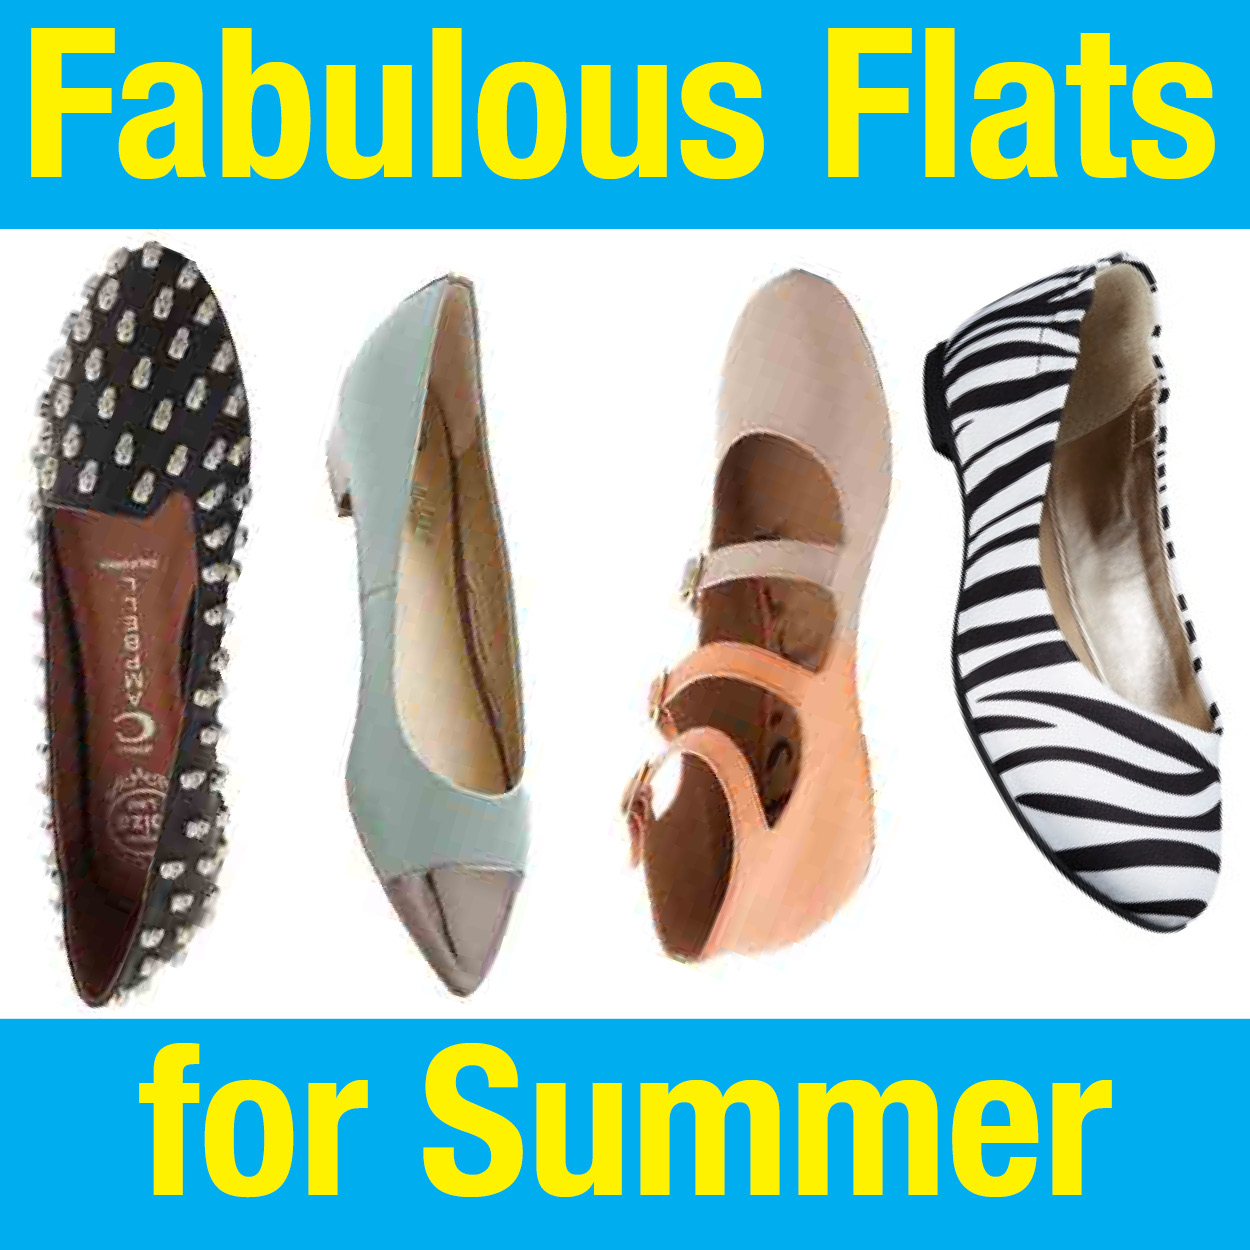 Fabulous Flats for Summer